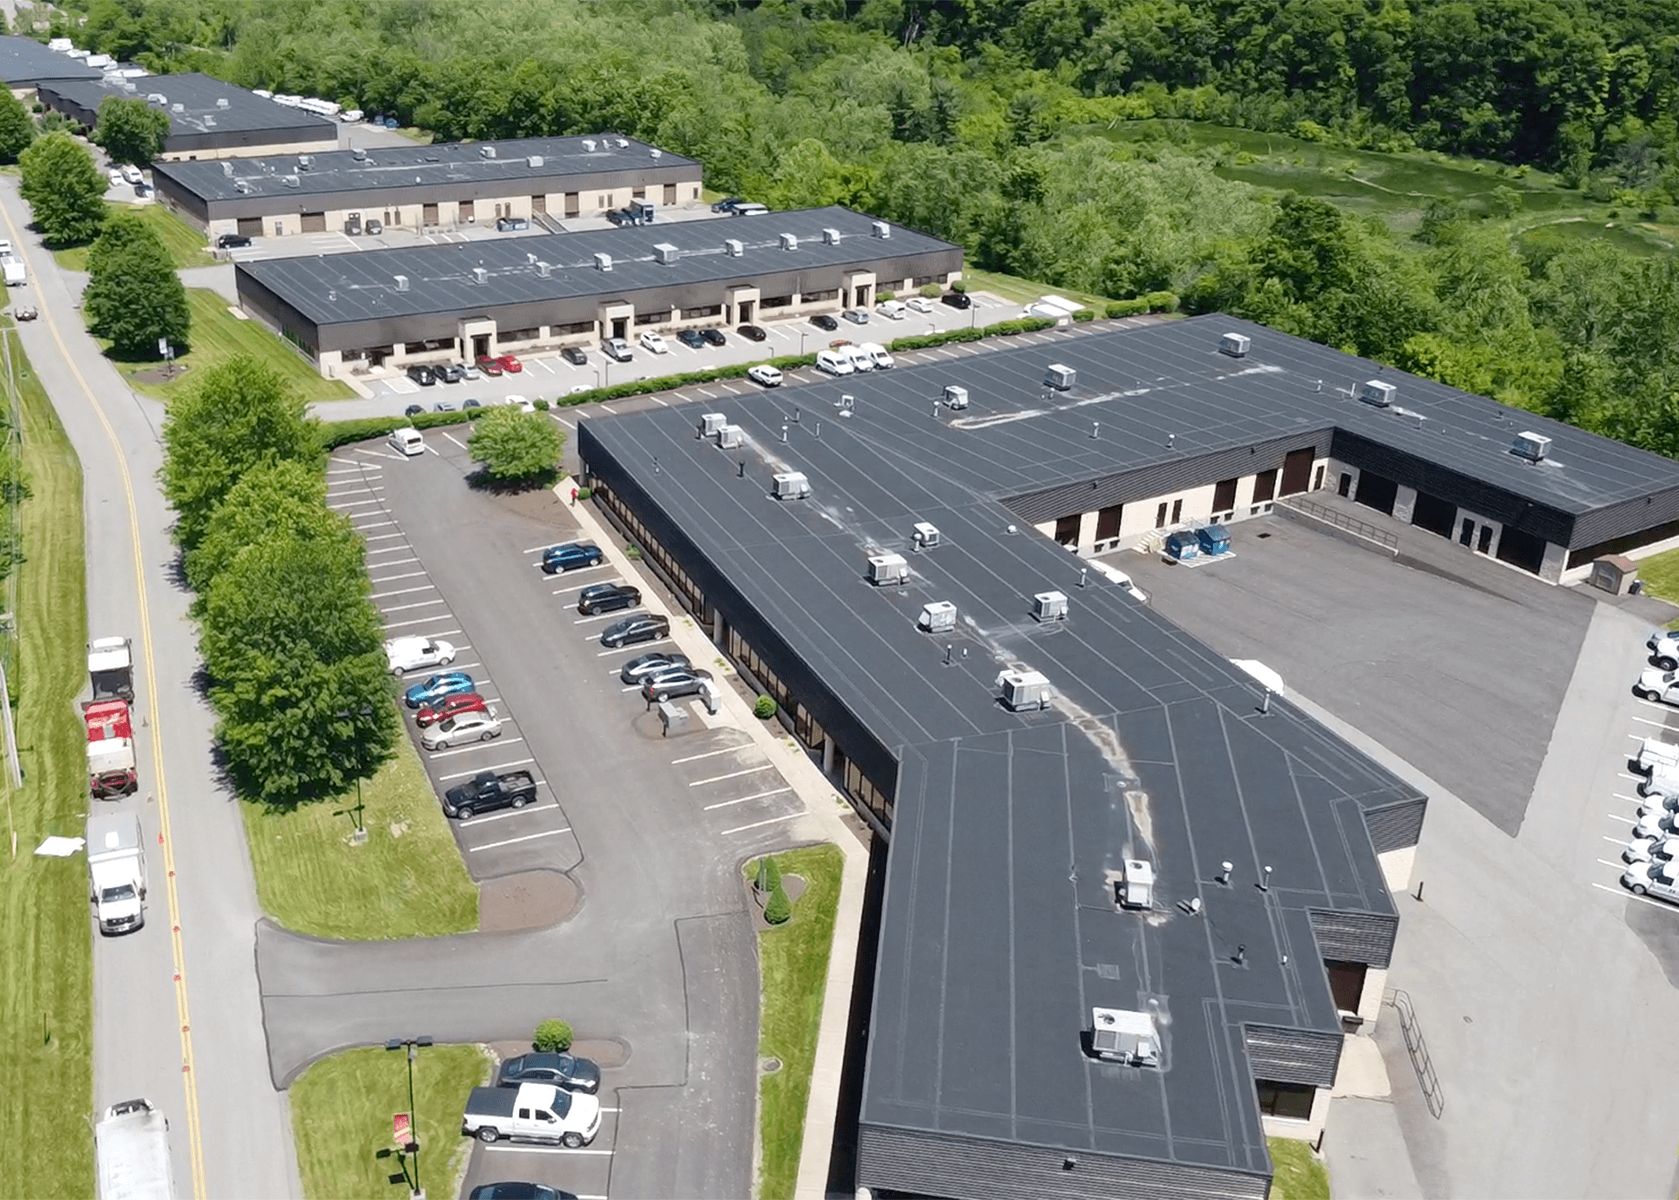 Aerial view of five buildings at Bursca business park